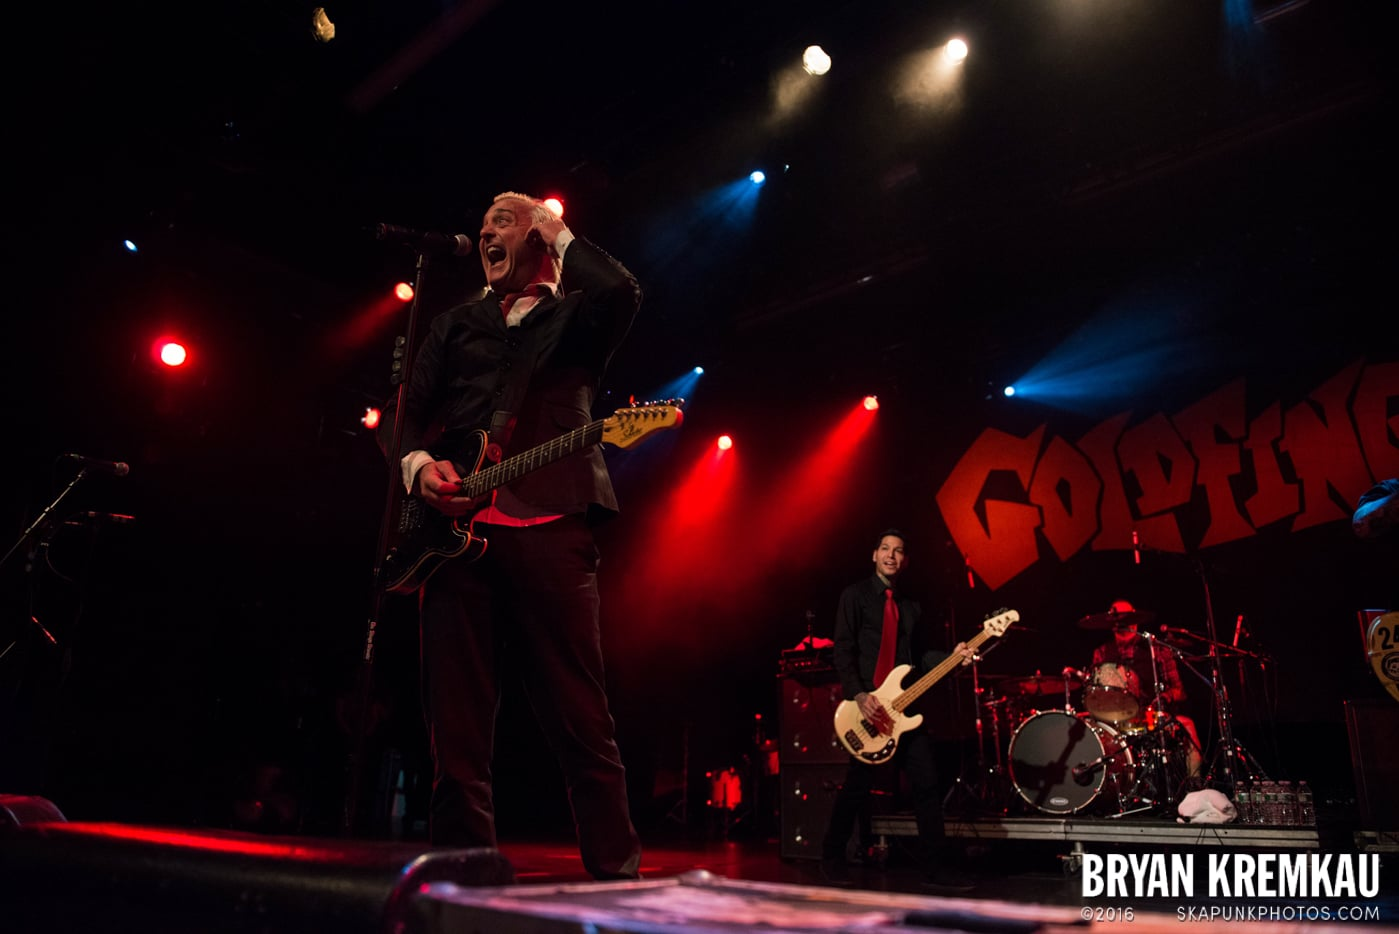 Goldfinger @ Best Buy Theater, NYC - 11.12.13 (38)